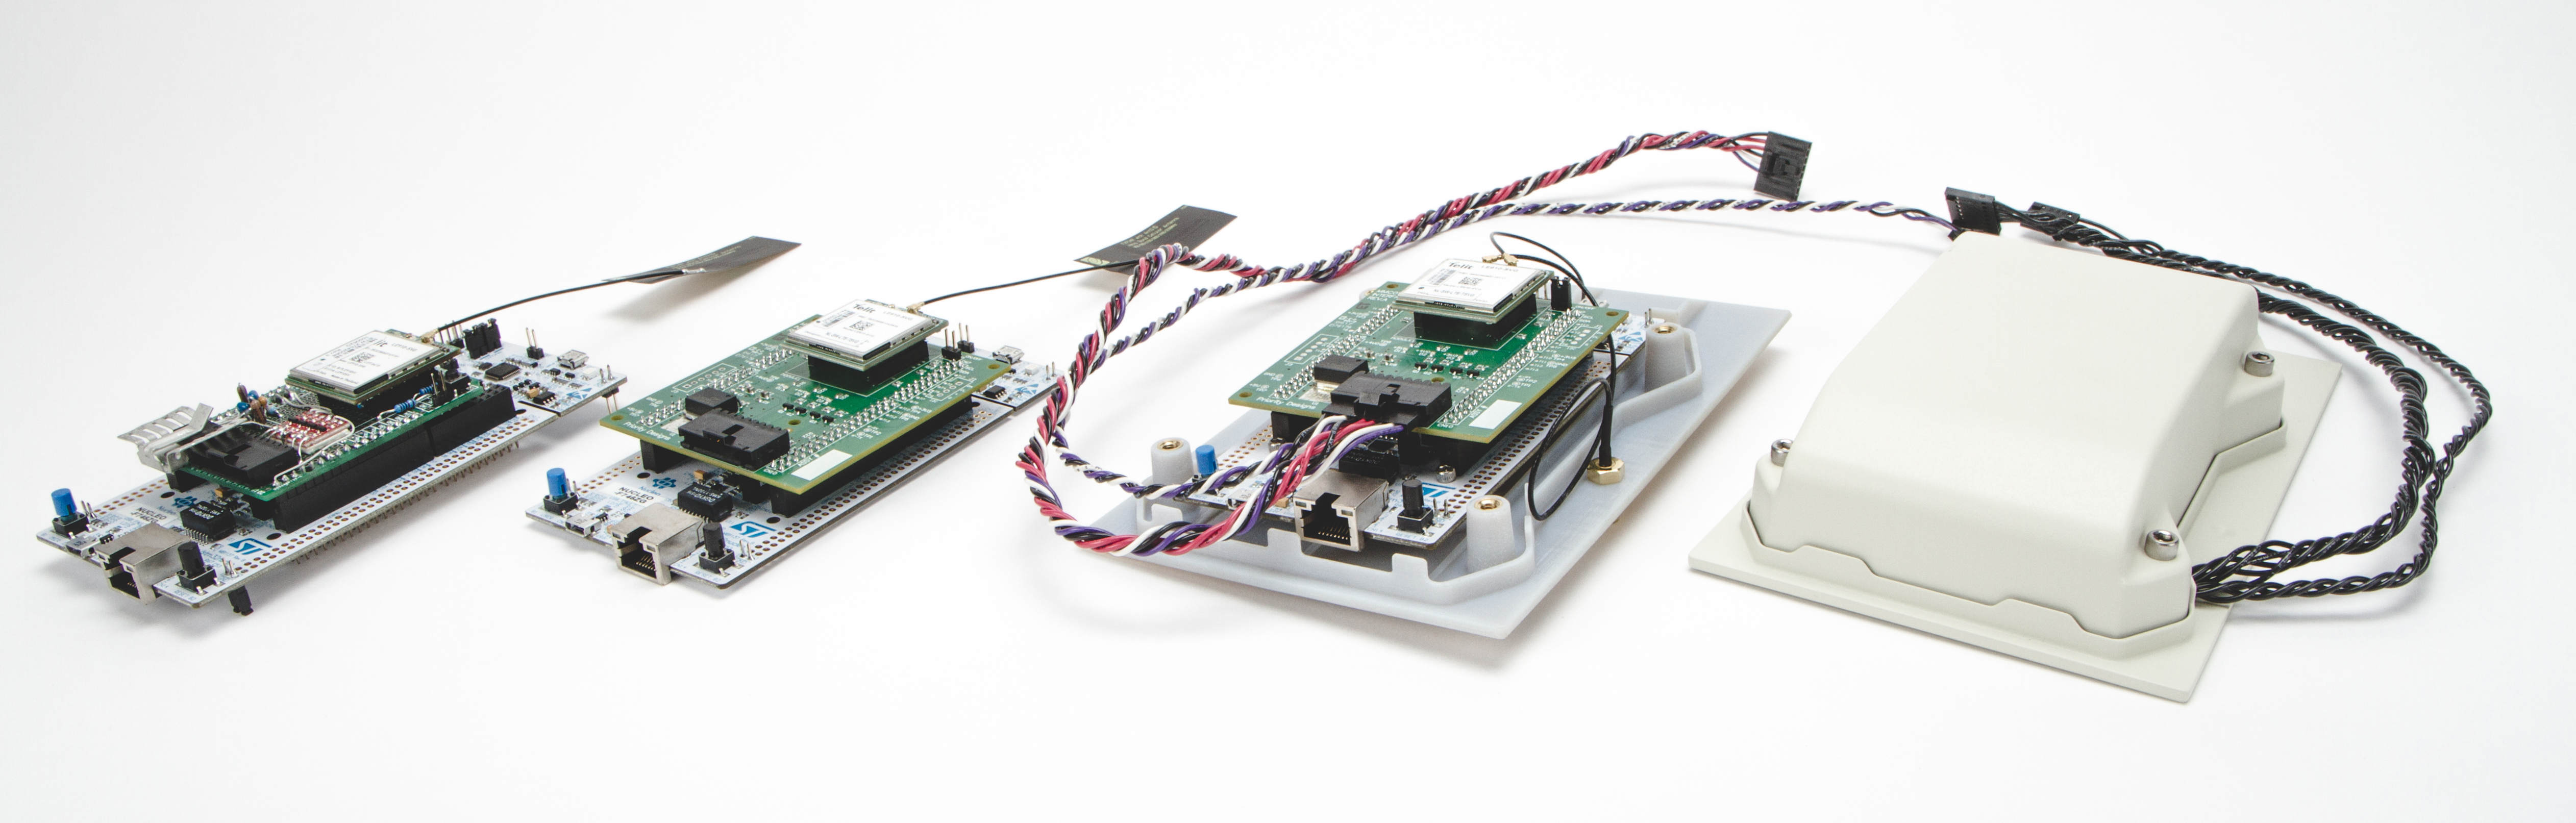 evolution of internet of things prototype using cellular and stm32 microcontroller